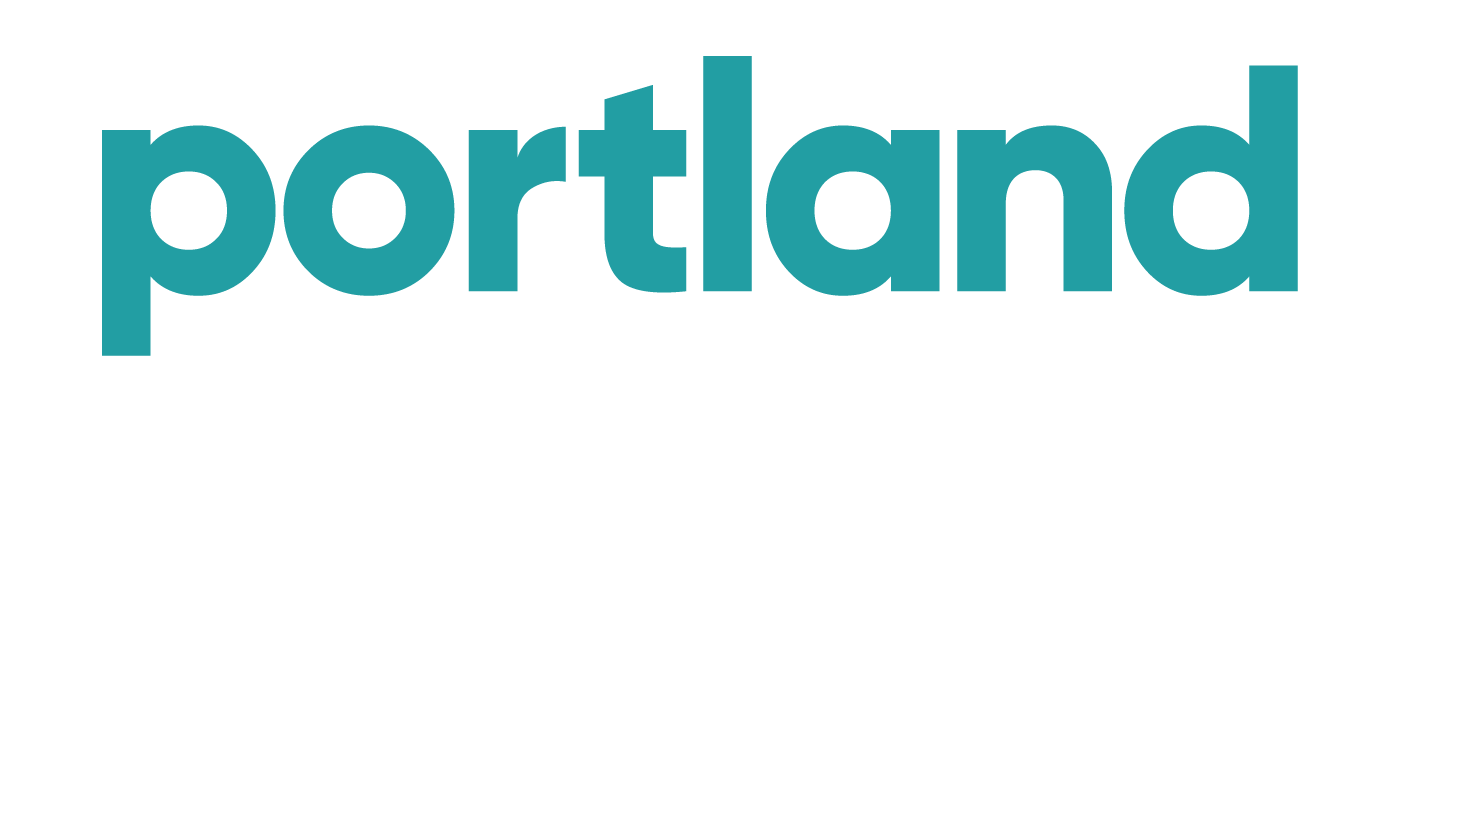 Portland Means Progress